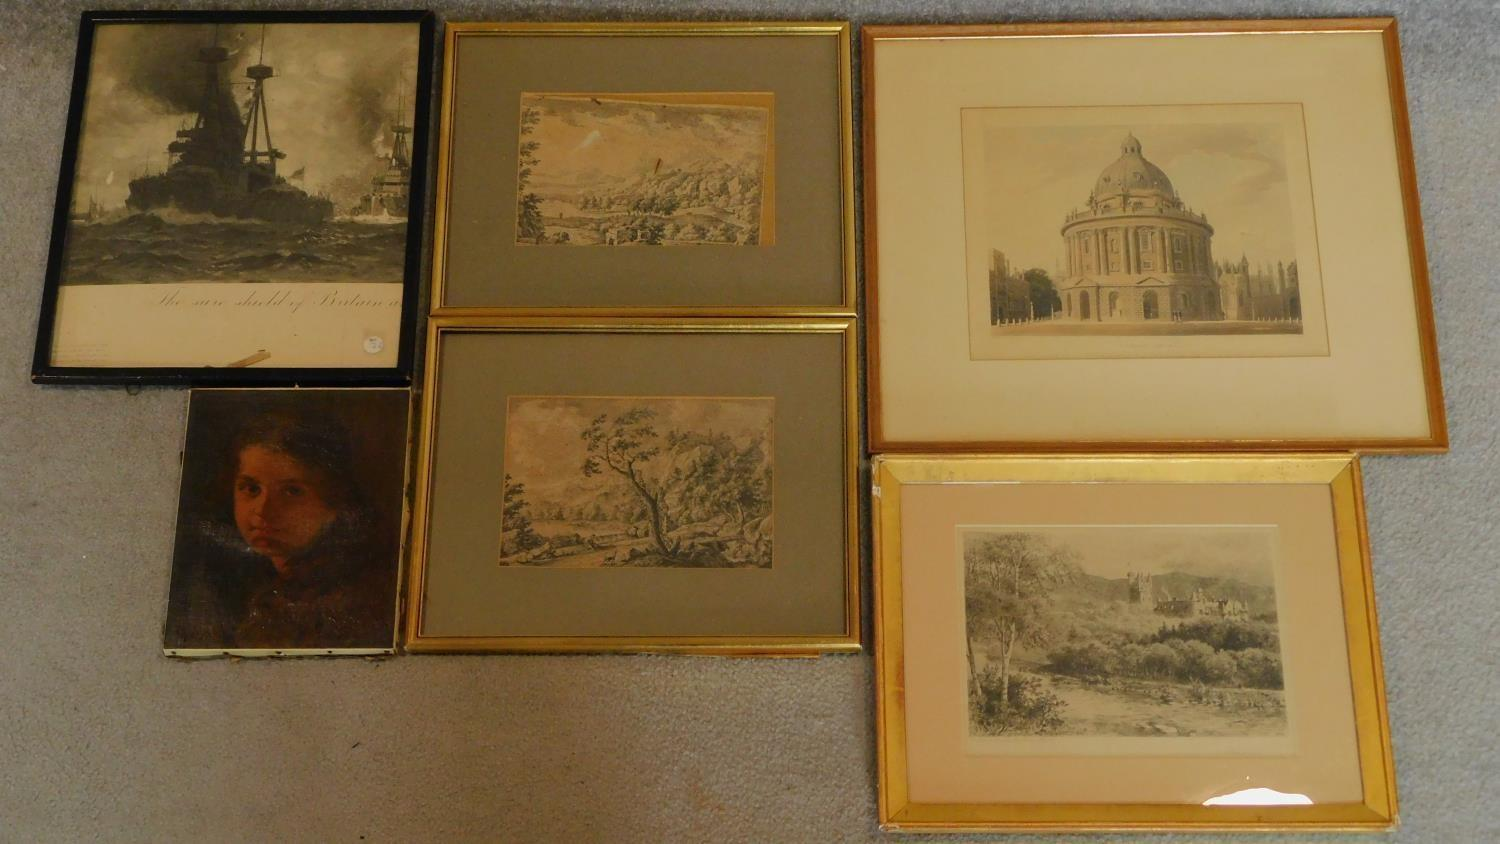 A miscellaneous collection of five 18th century and later framed and glazed prints and an unframed